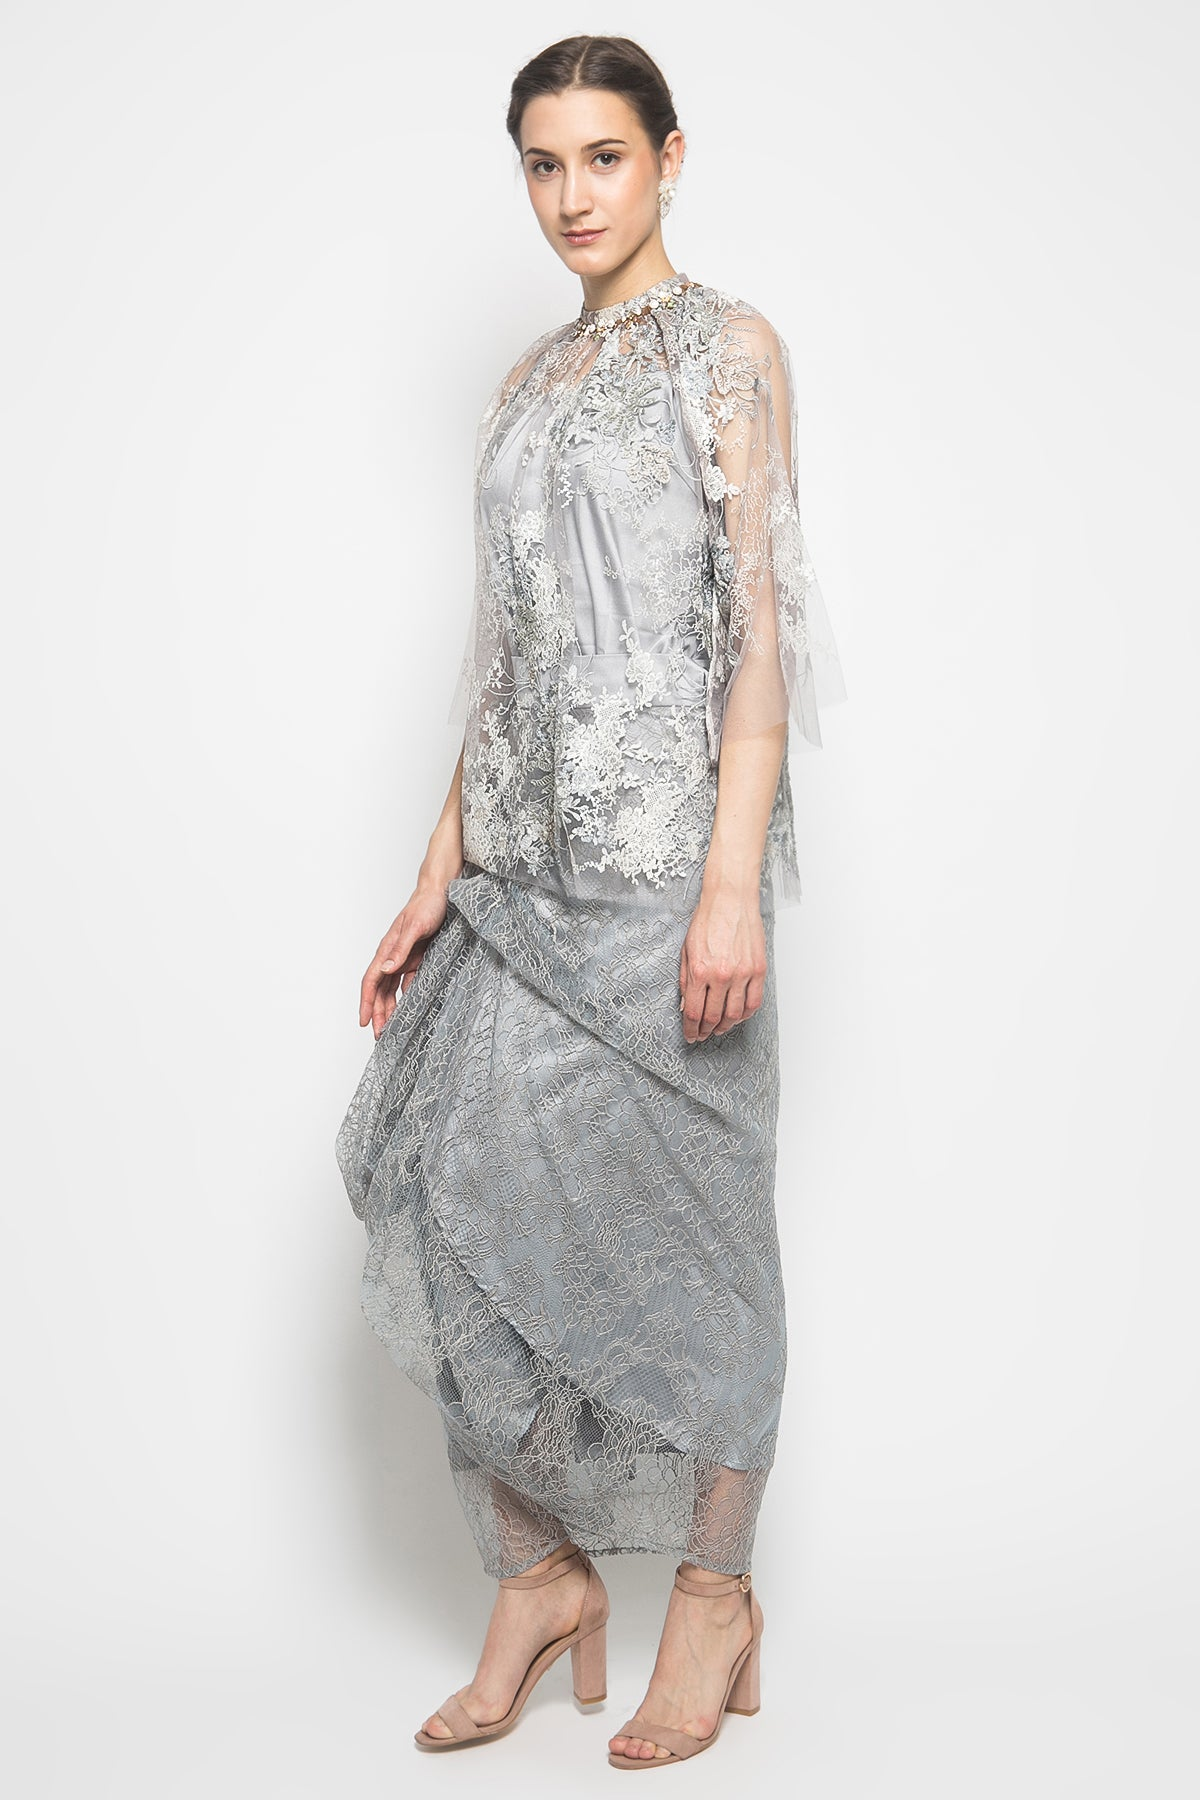 MYVB Atelier Étienne Layered Top in Ash Grey